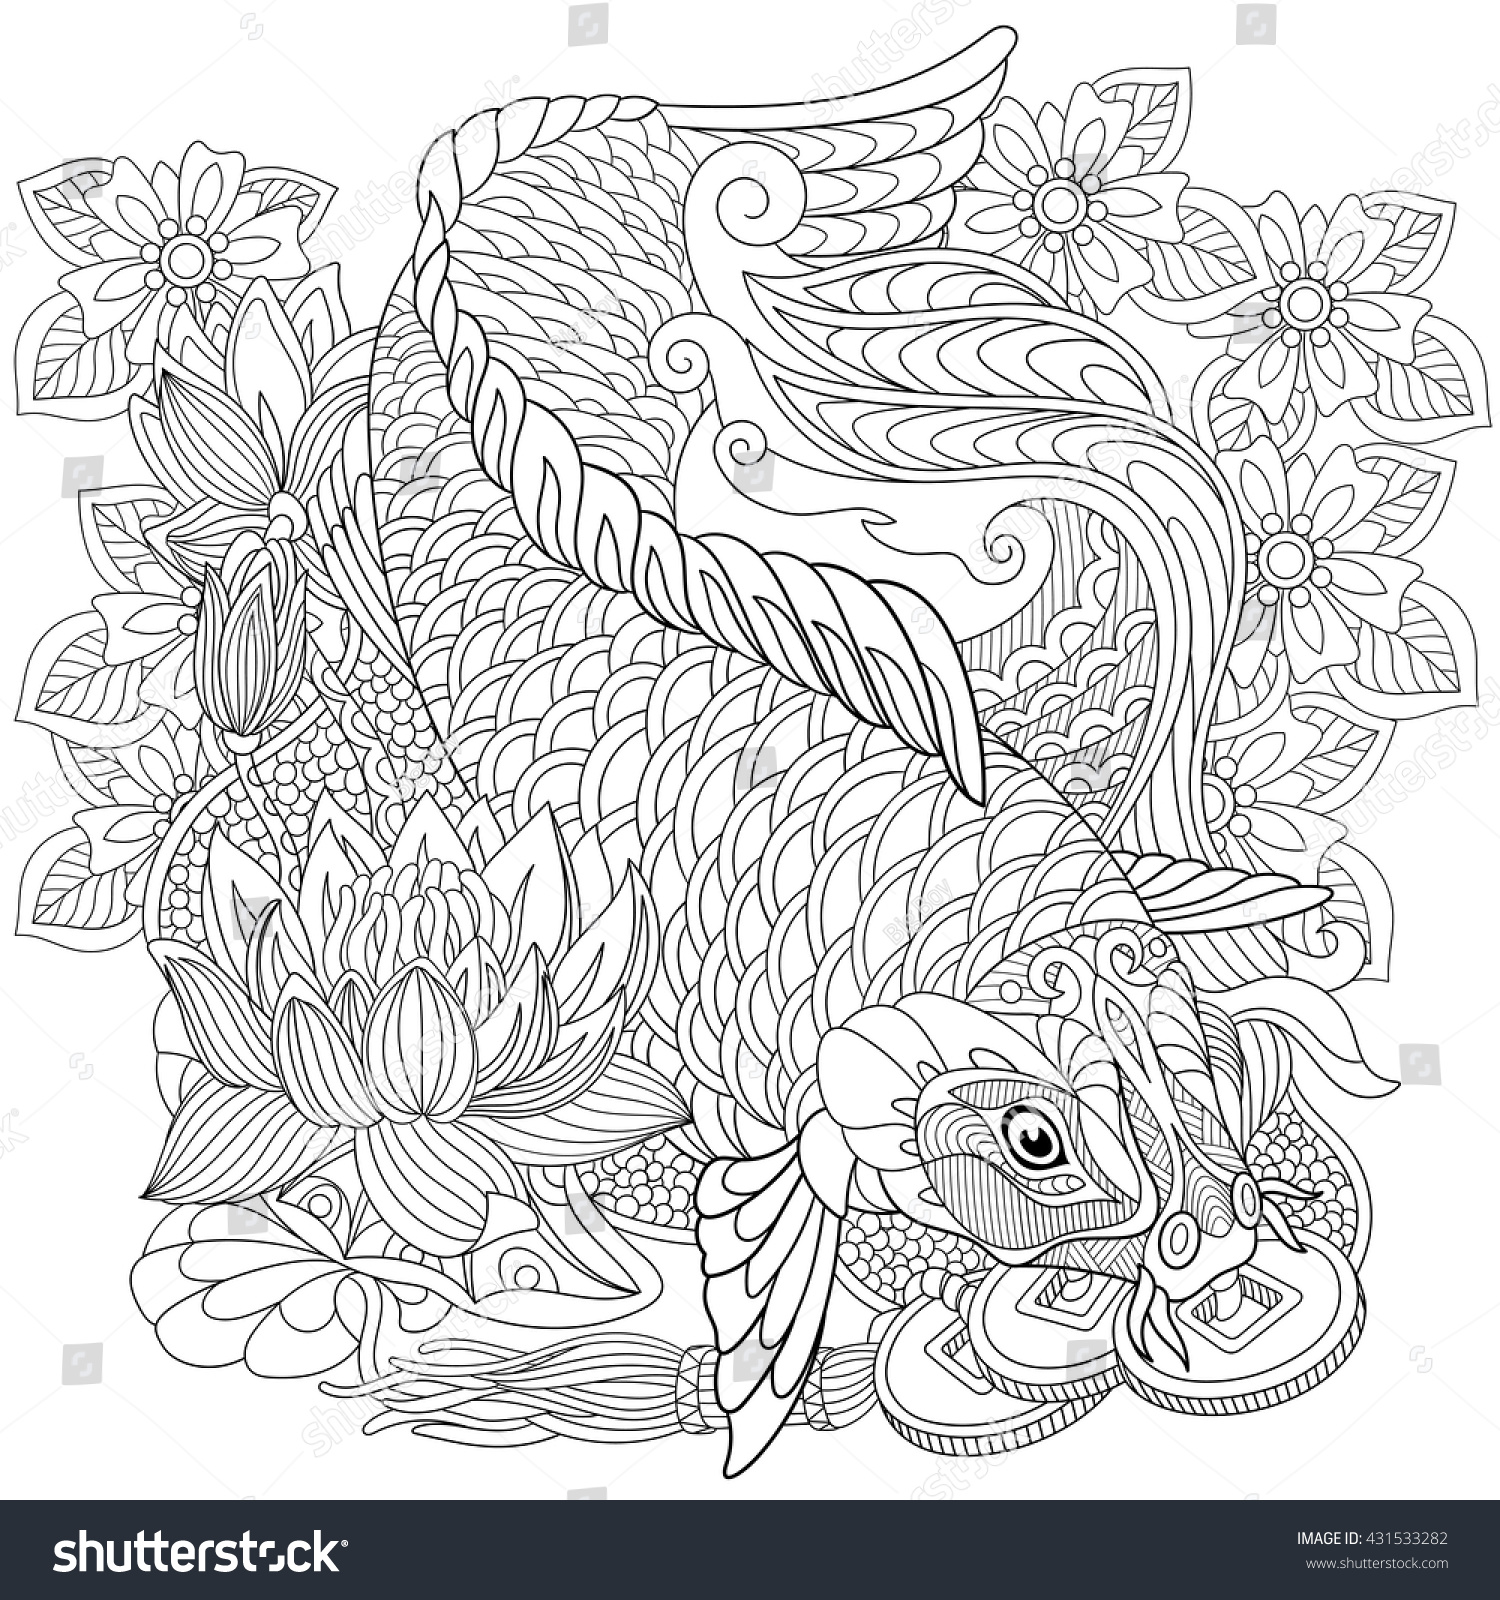 Zentangle Stylized Cartoon Koi Carp Isolated Stock Vector